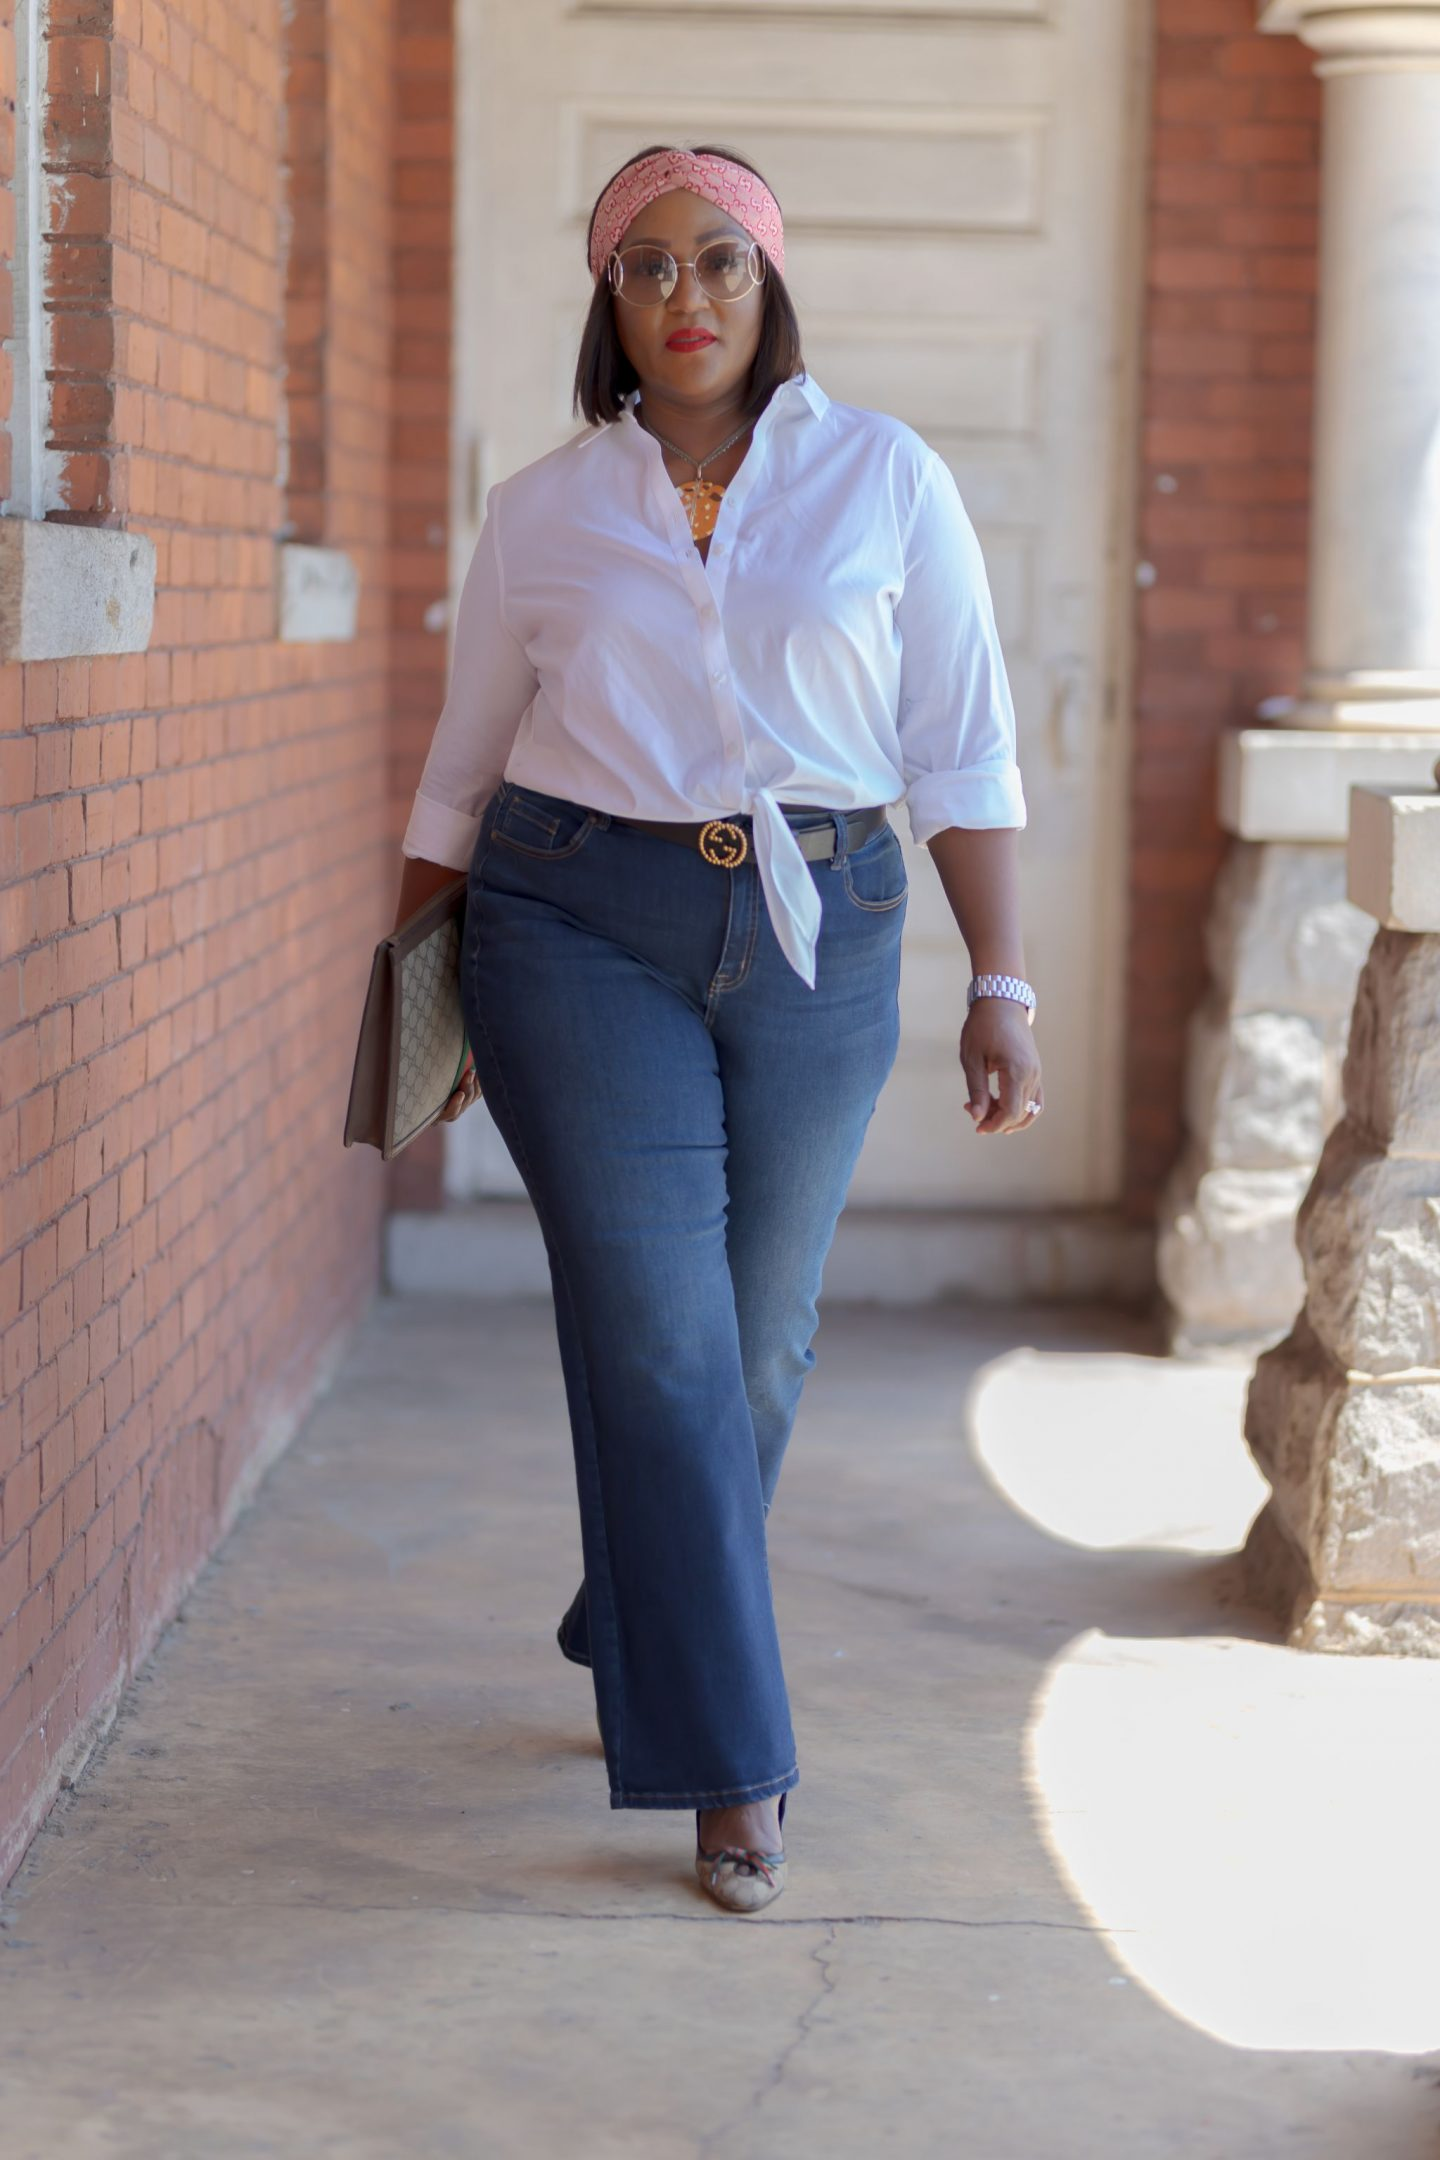 Influencer Nikki Free walking in pair of Lane Bryant Flex Magic Waistband Jean